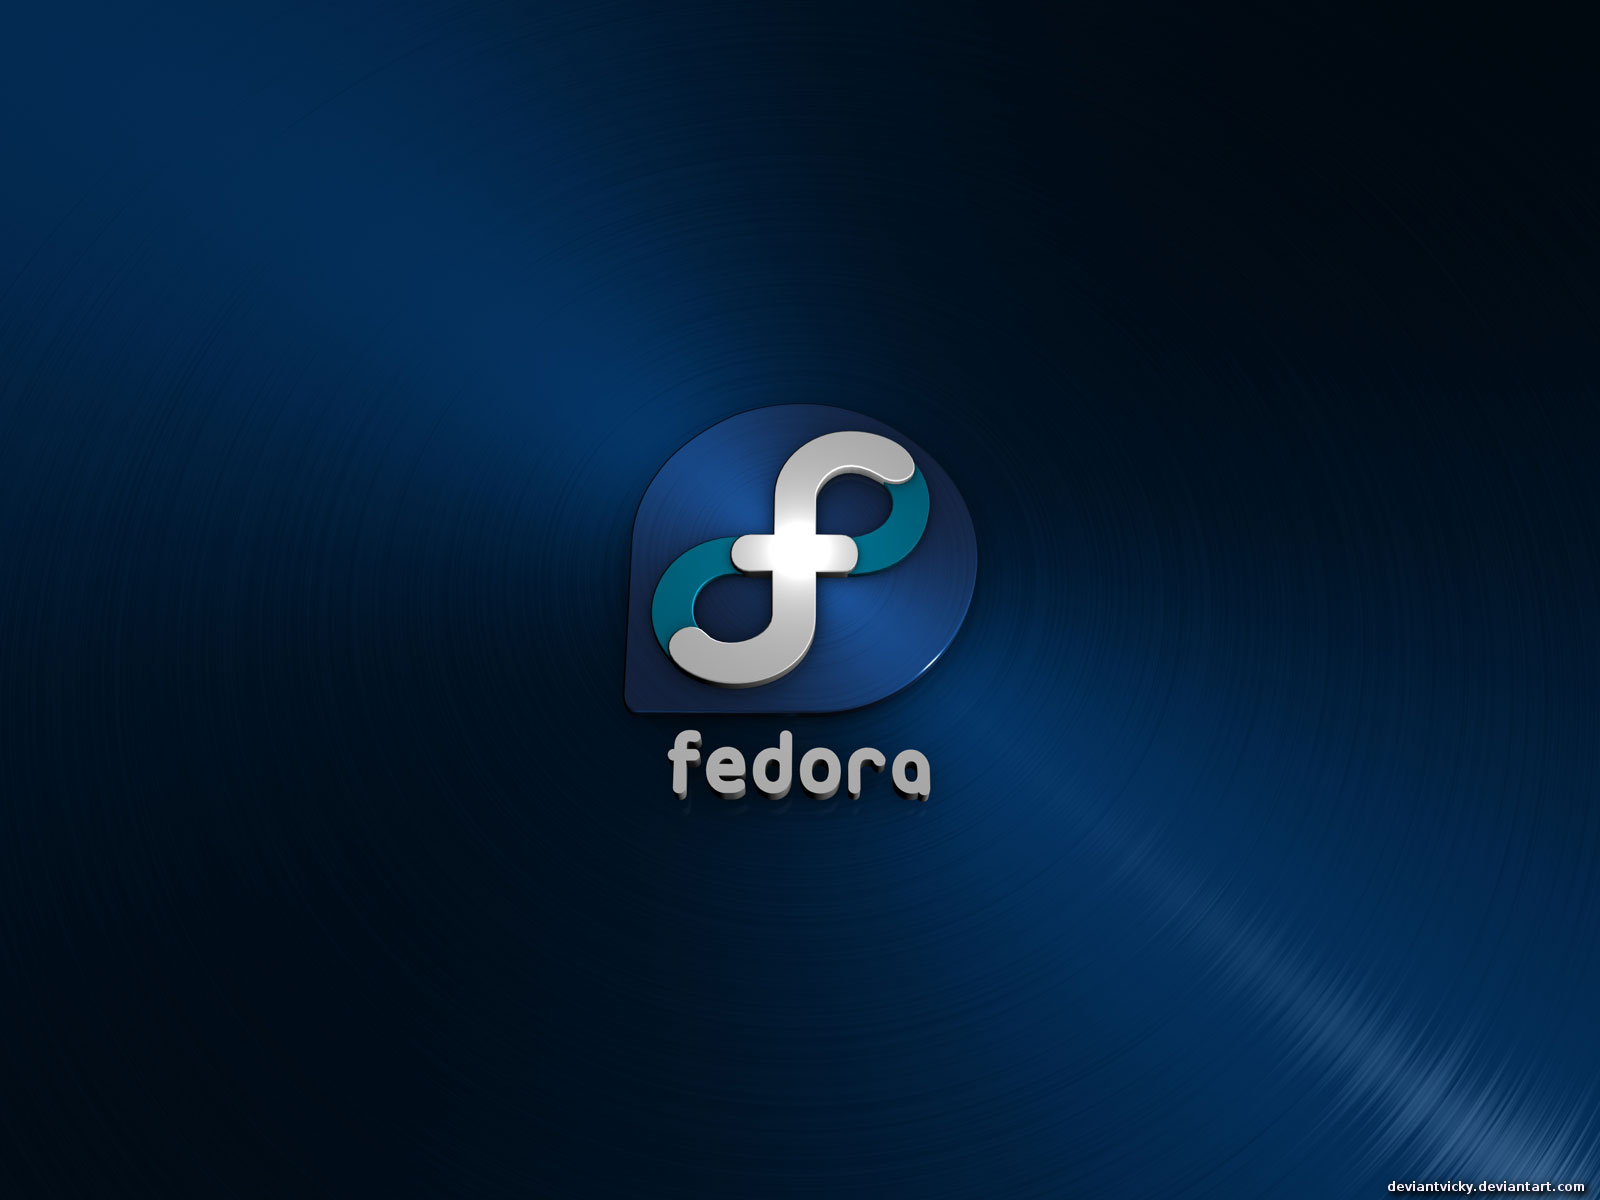 Fedora Logo Wallpaper